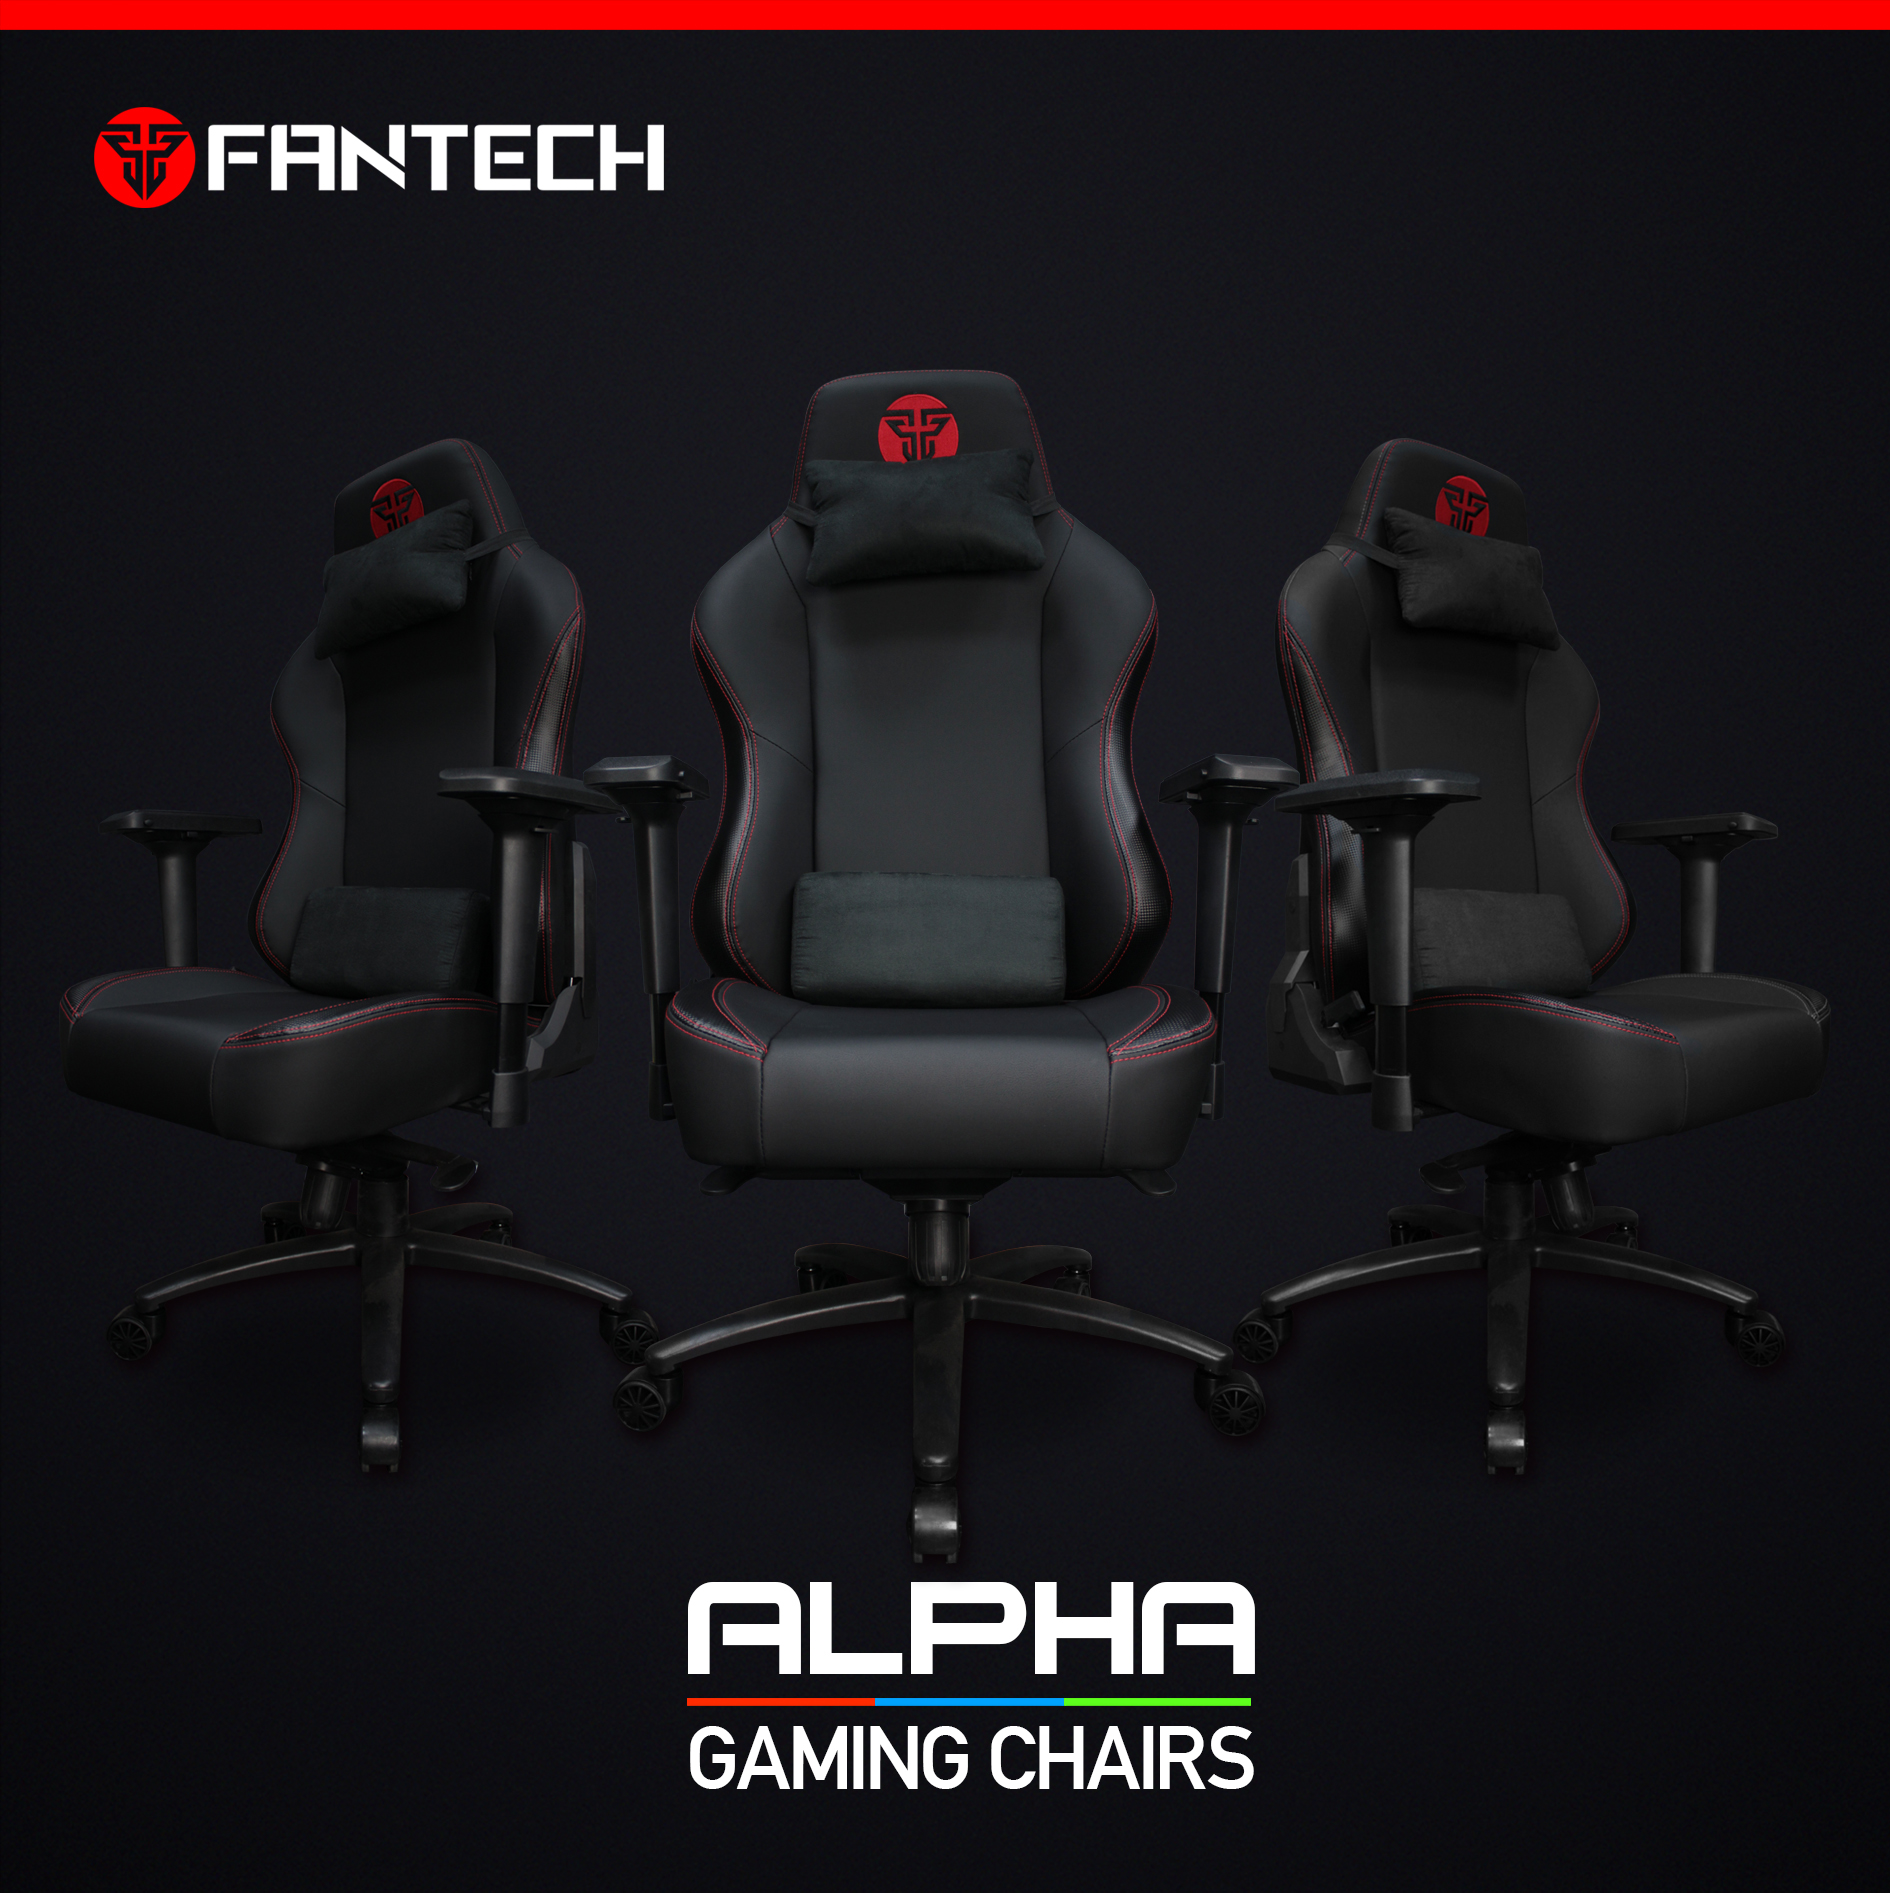 Fantech GC-183 Ergonomic Stability & Safety Gaming Chair 4